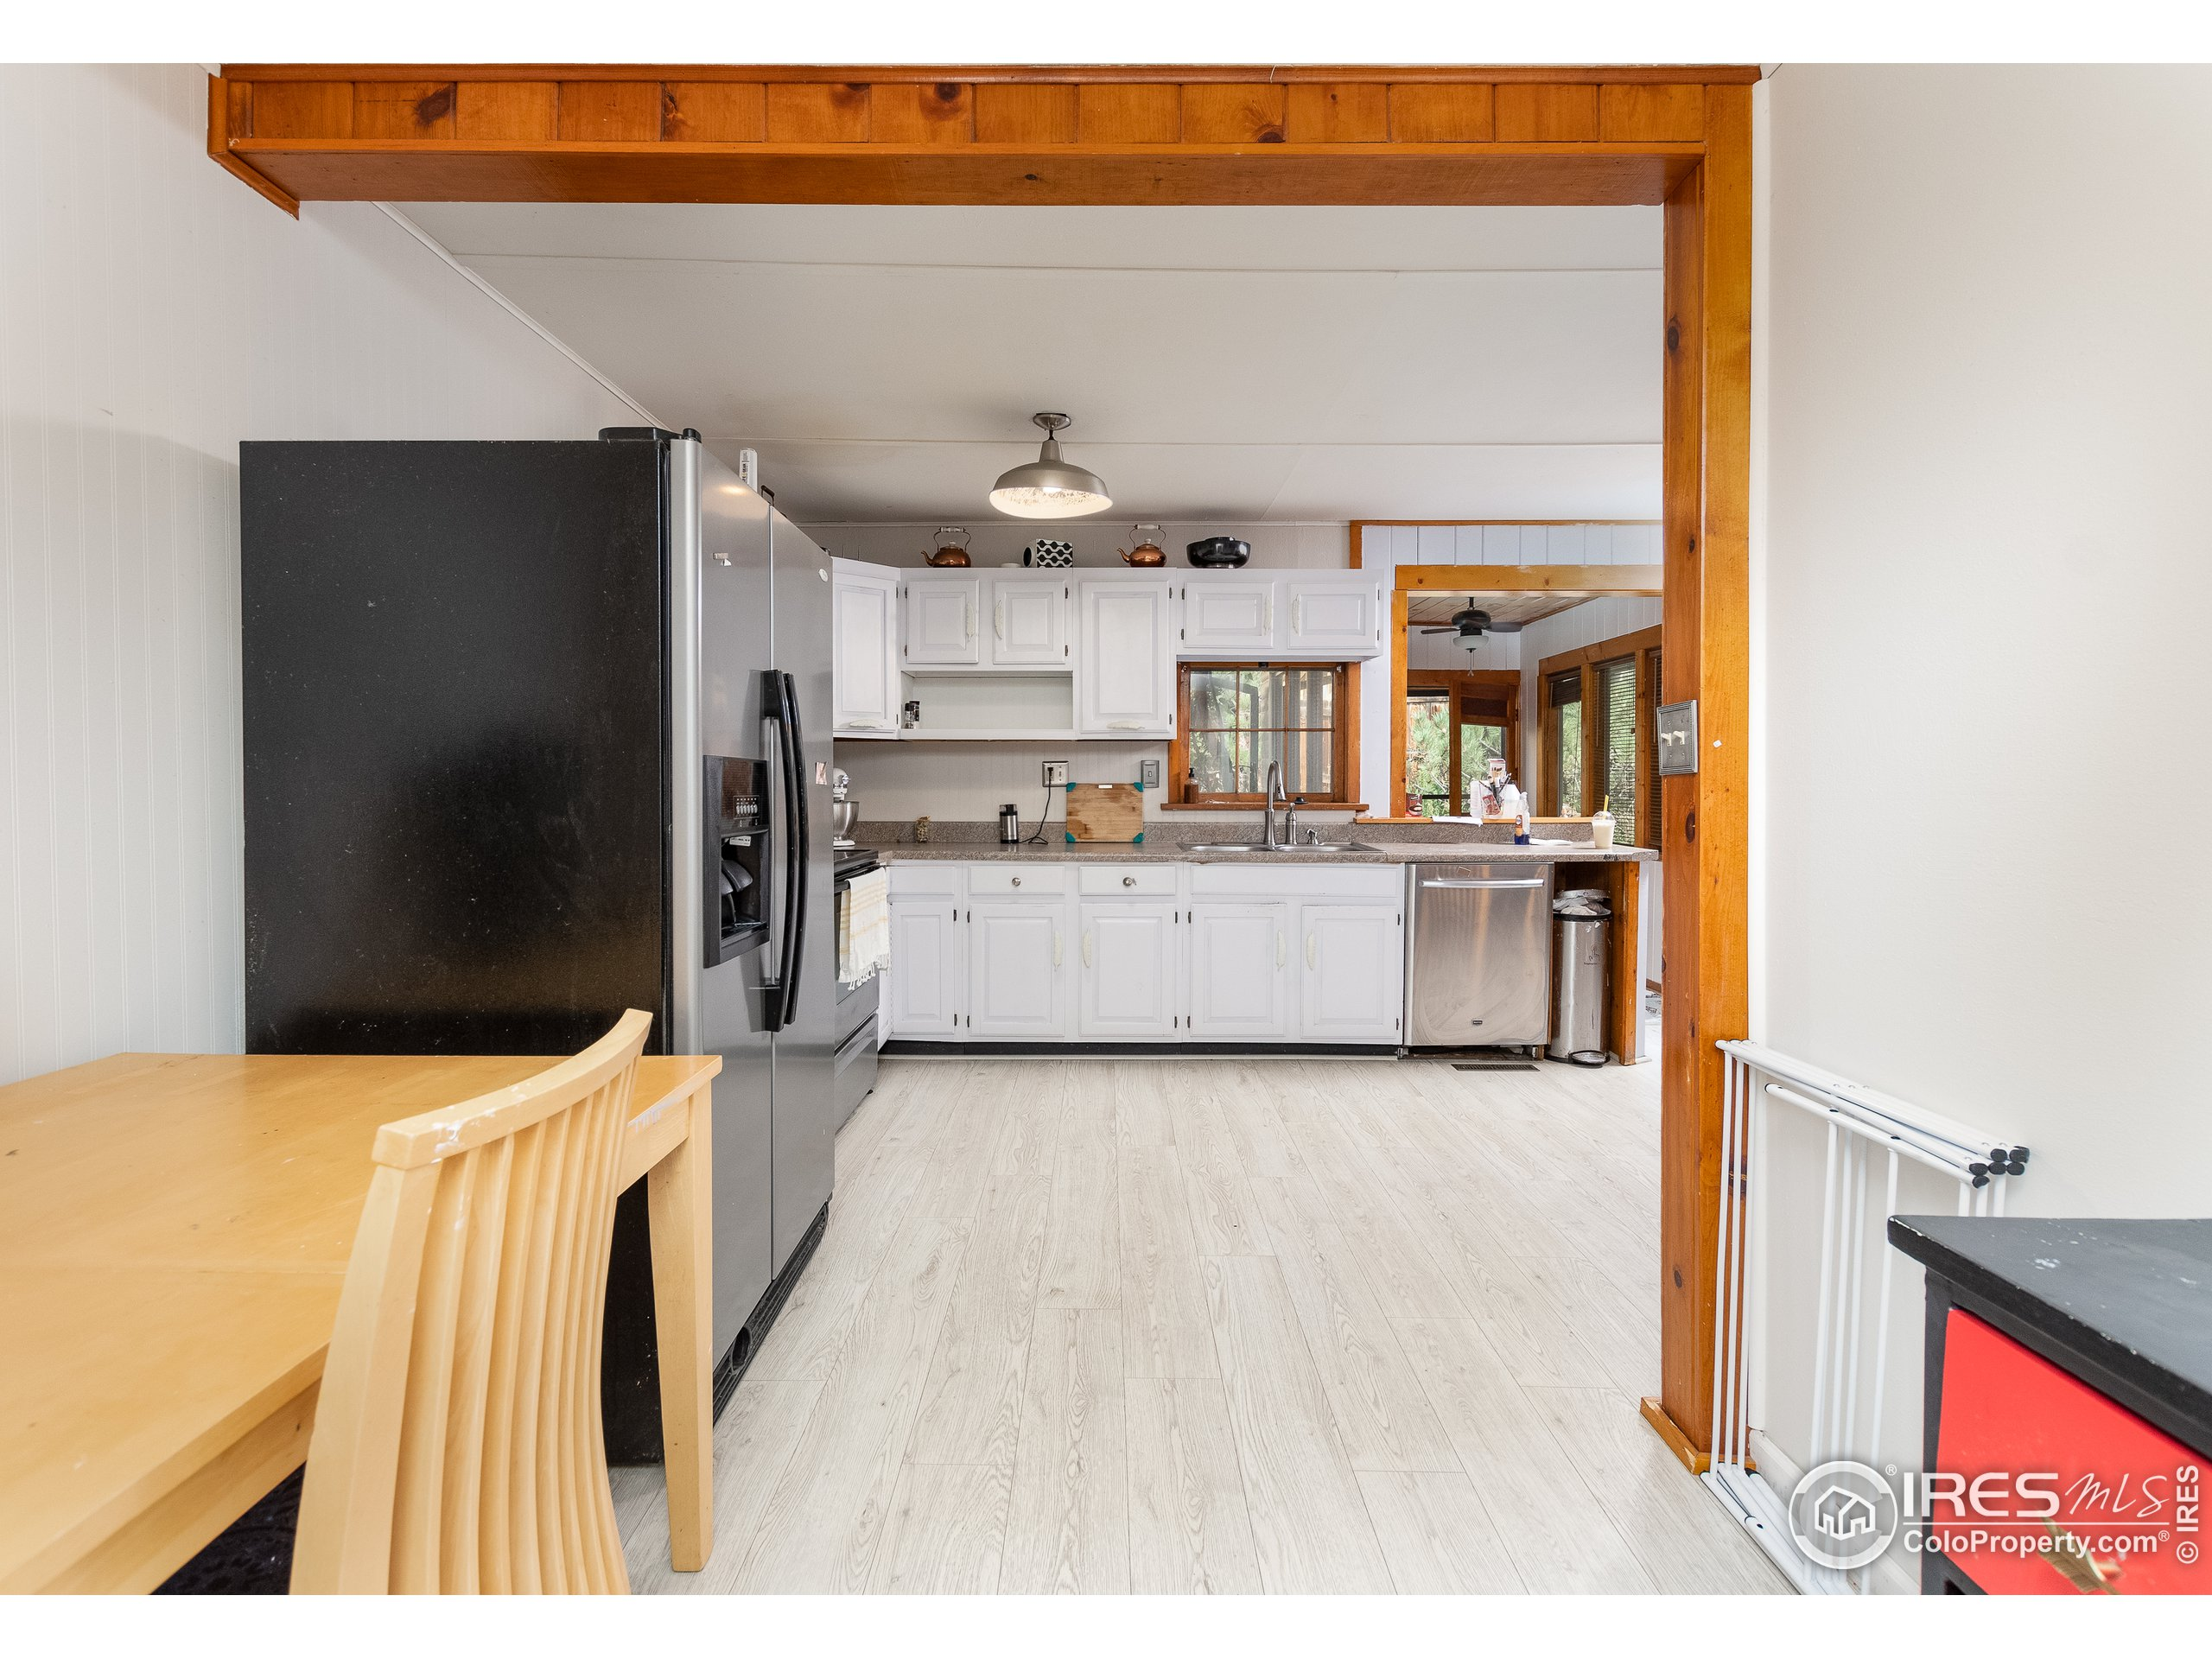 A couple of areas for dining in the kitchen